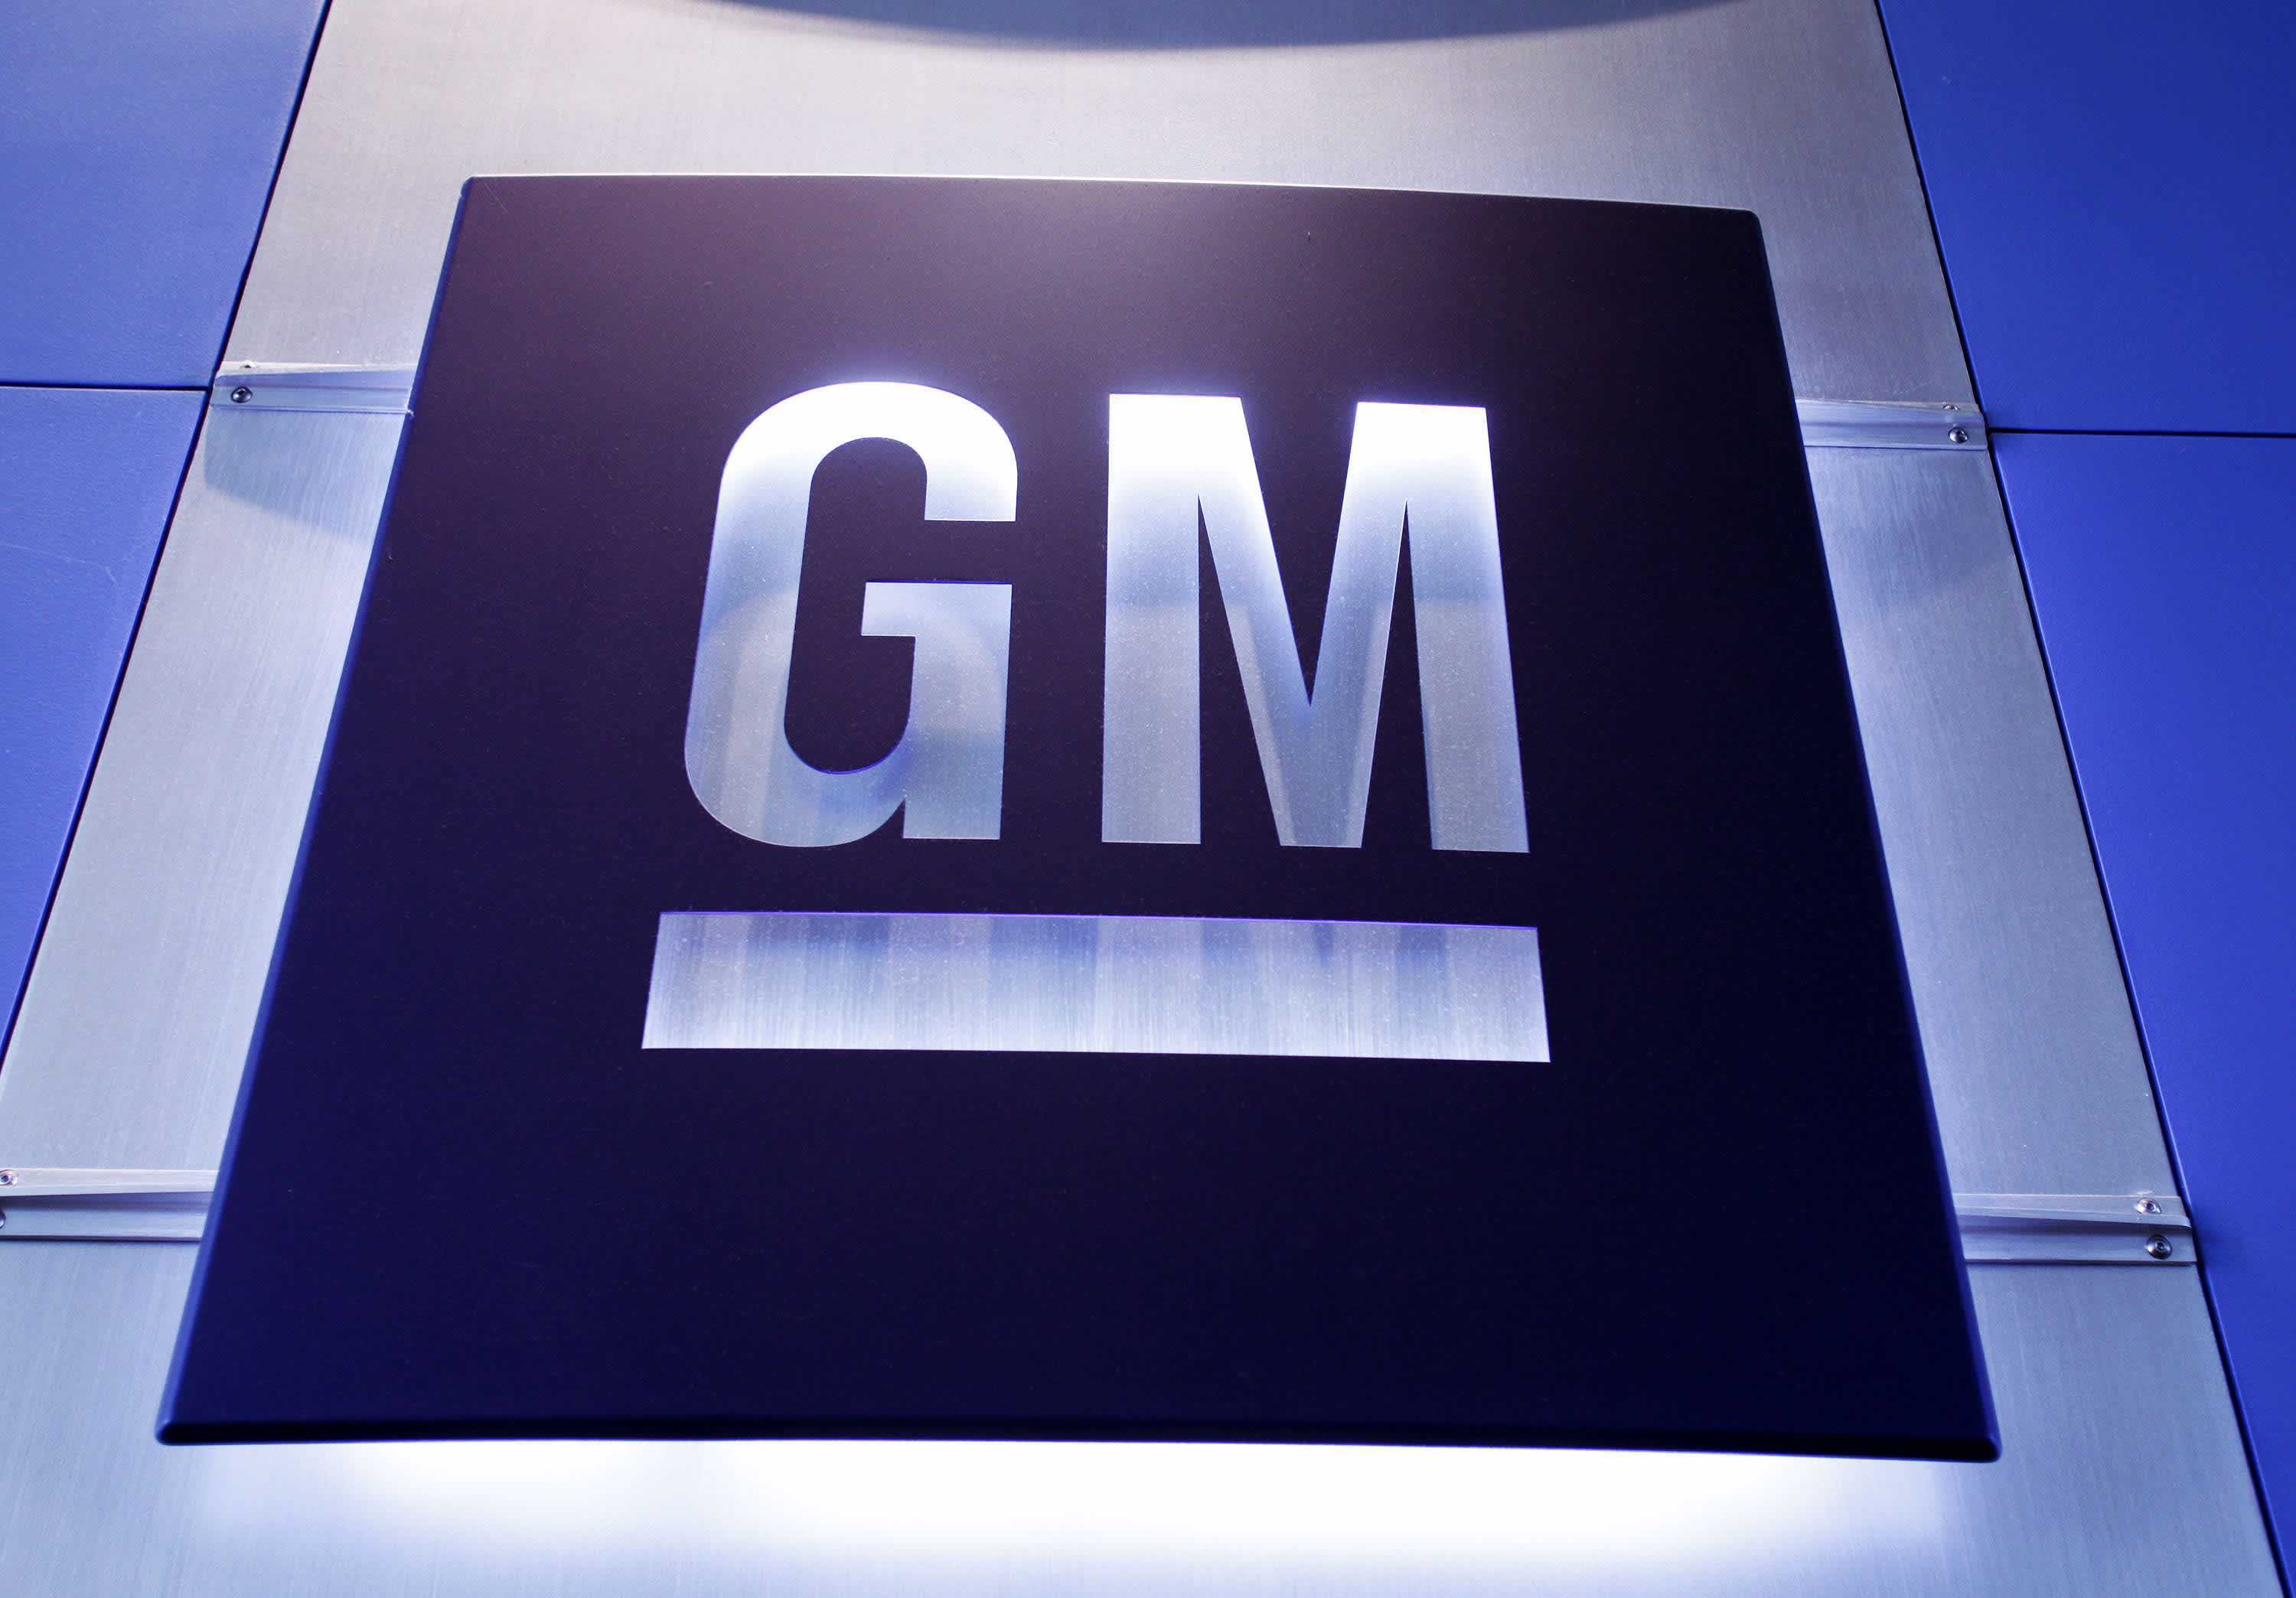 UAW president calls GM share buyback proposal premature